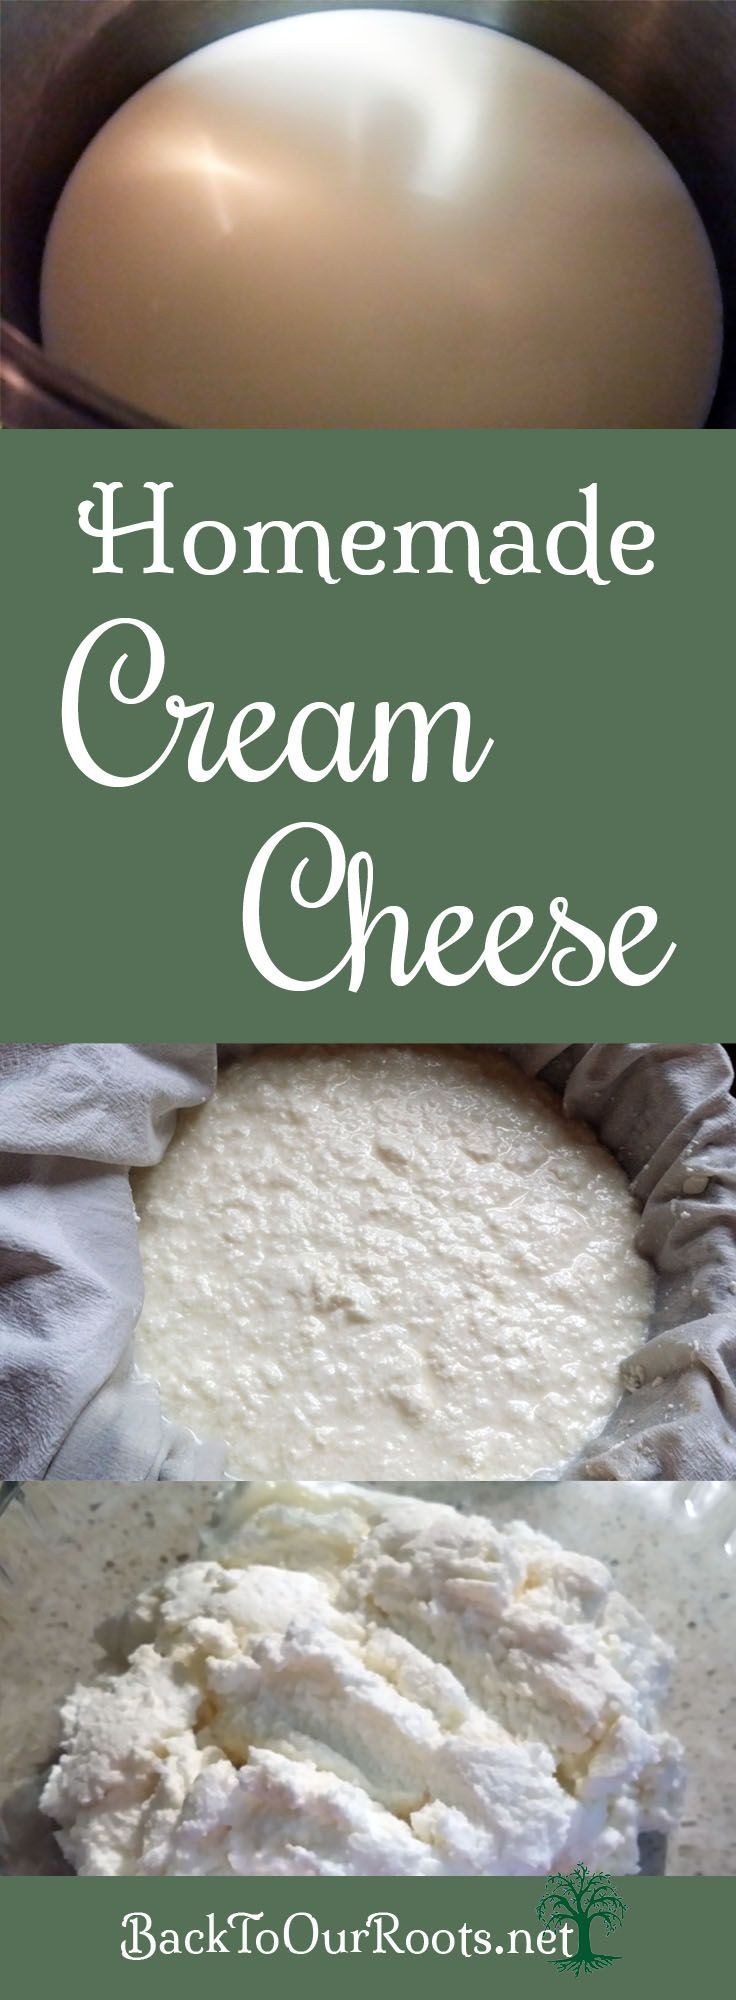 Easy Homemade Cream Cheese